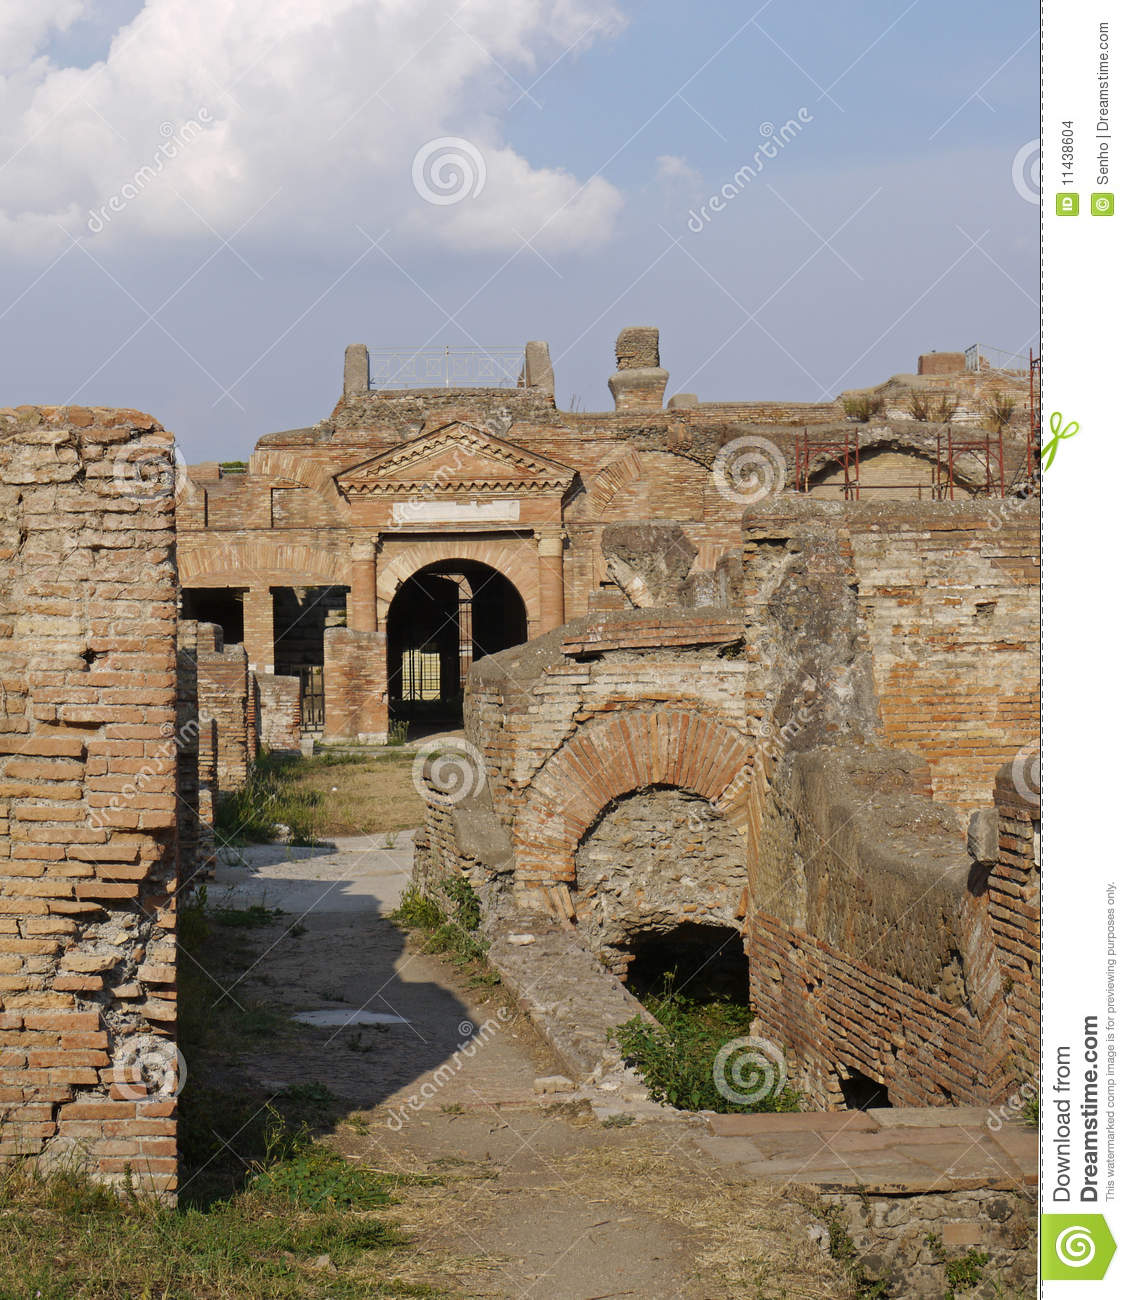 Ruins of ancient brick town stock images image 11438604 for Mr arredamenti ostia antica